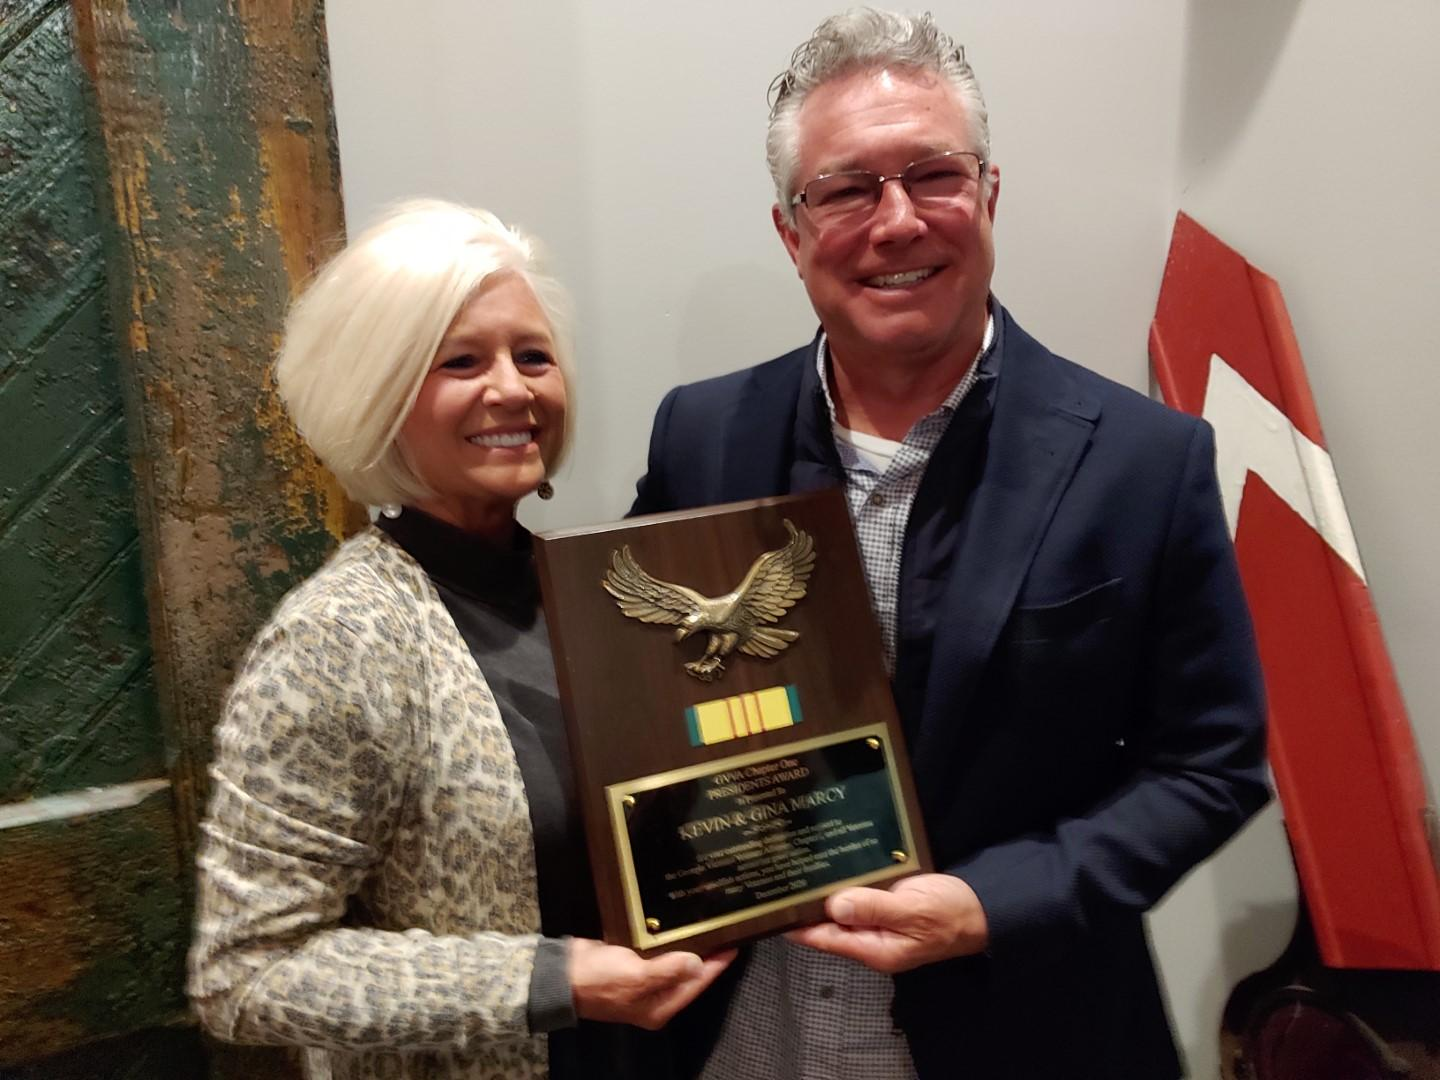 PRESIDENTS AWARD presented to KEVIN R. and Gina Marcy Feb 25th, 2021